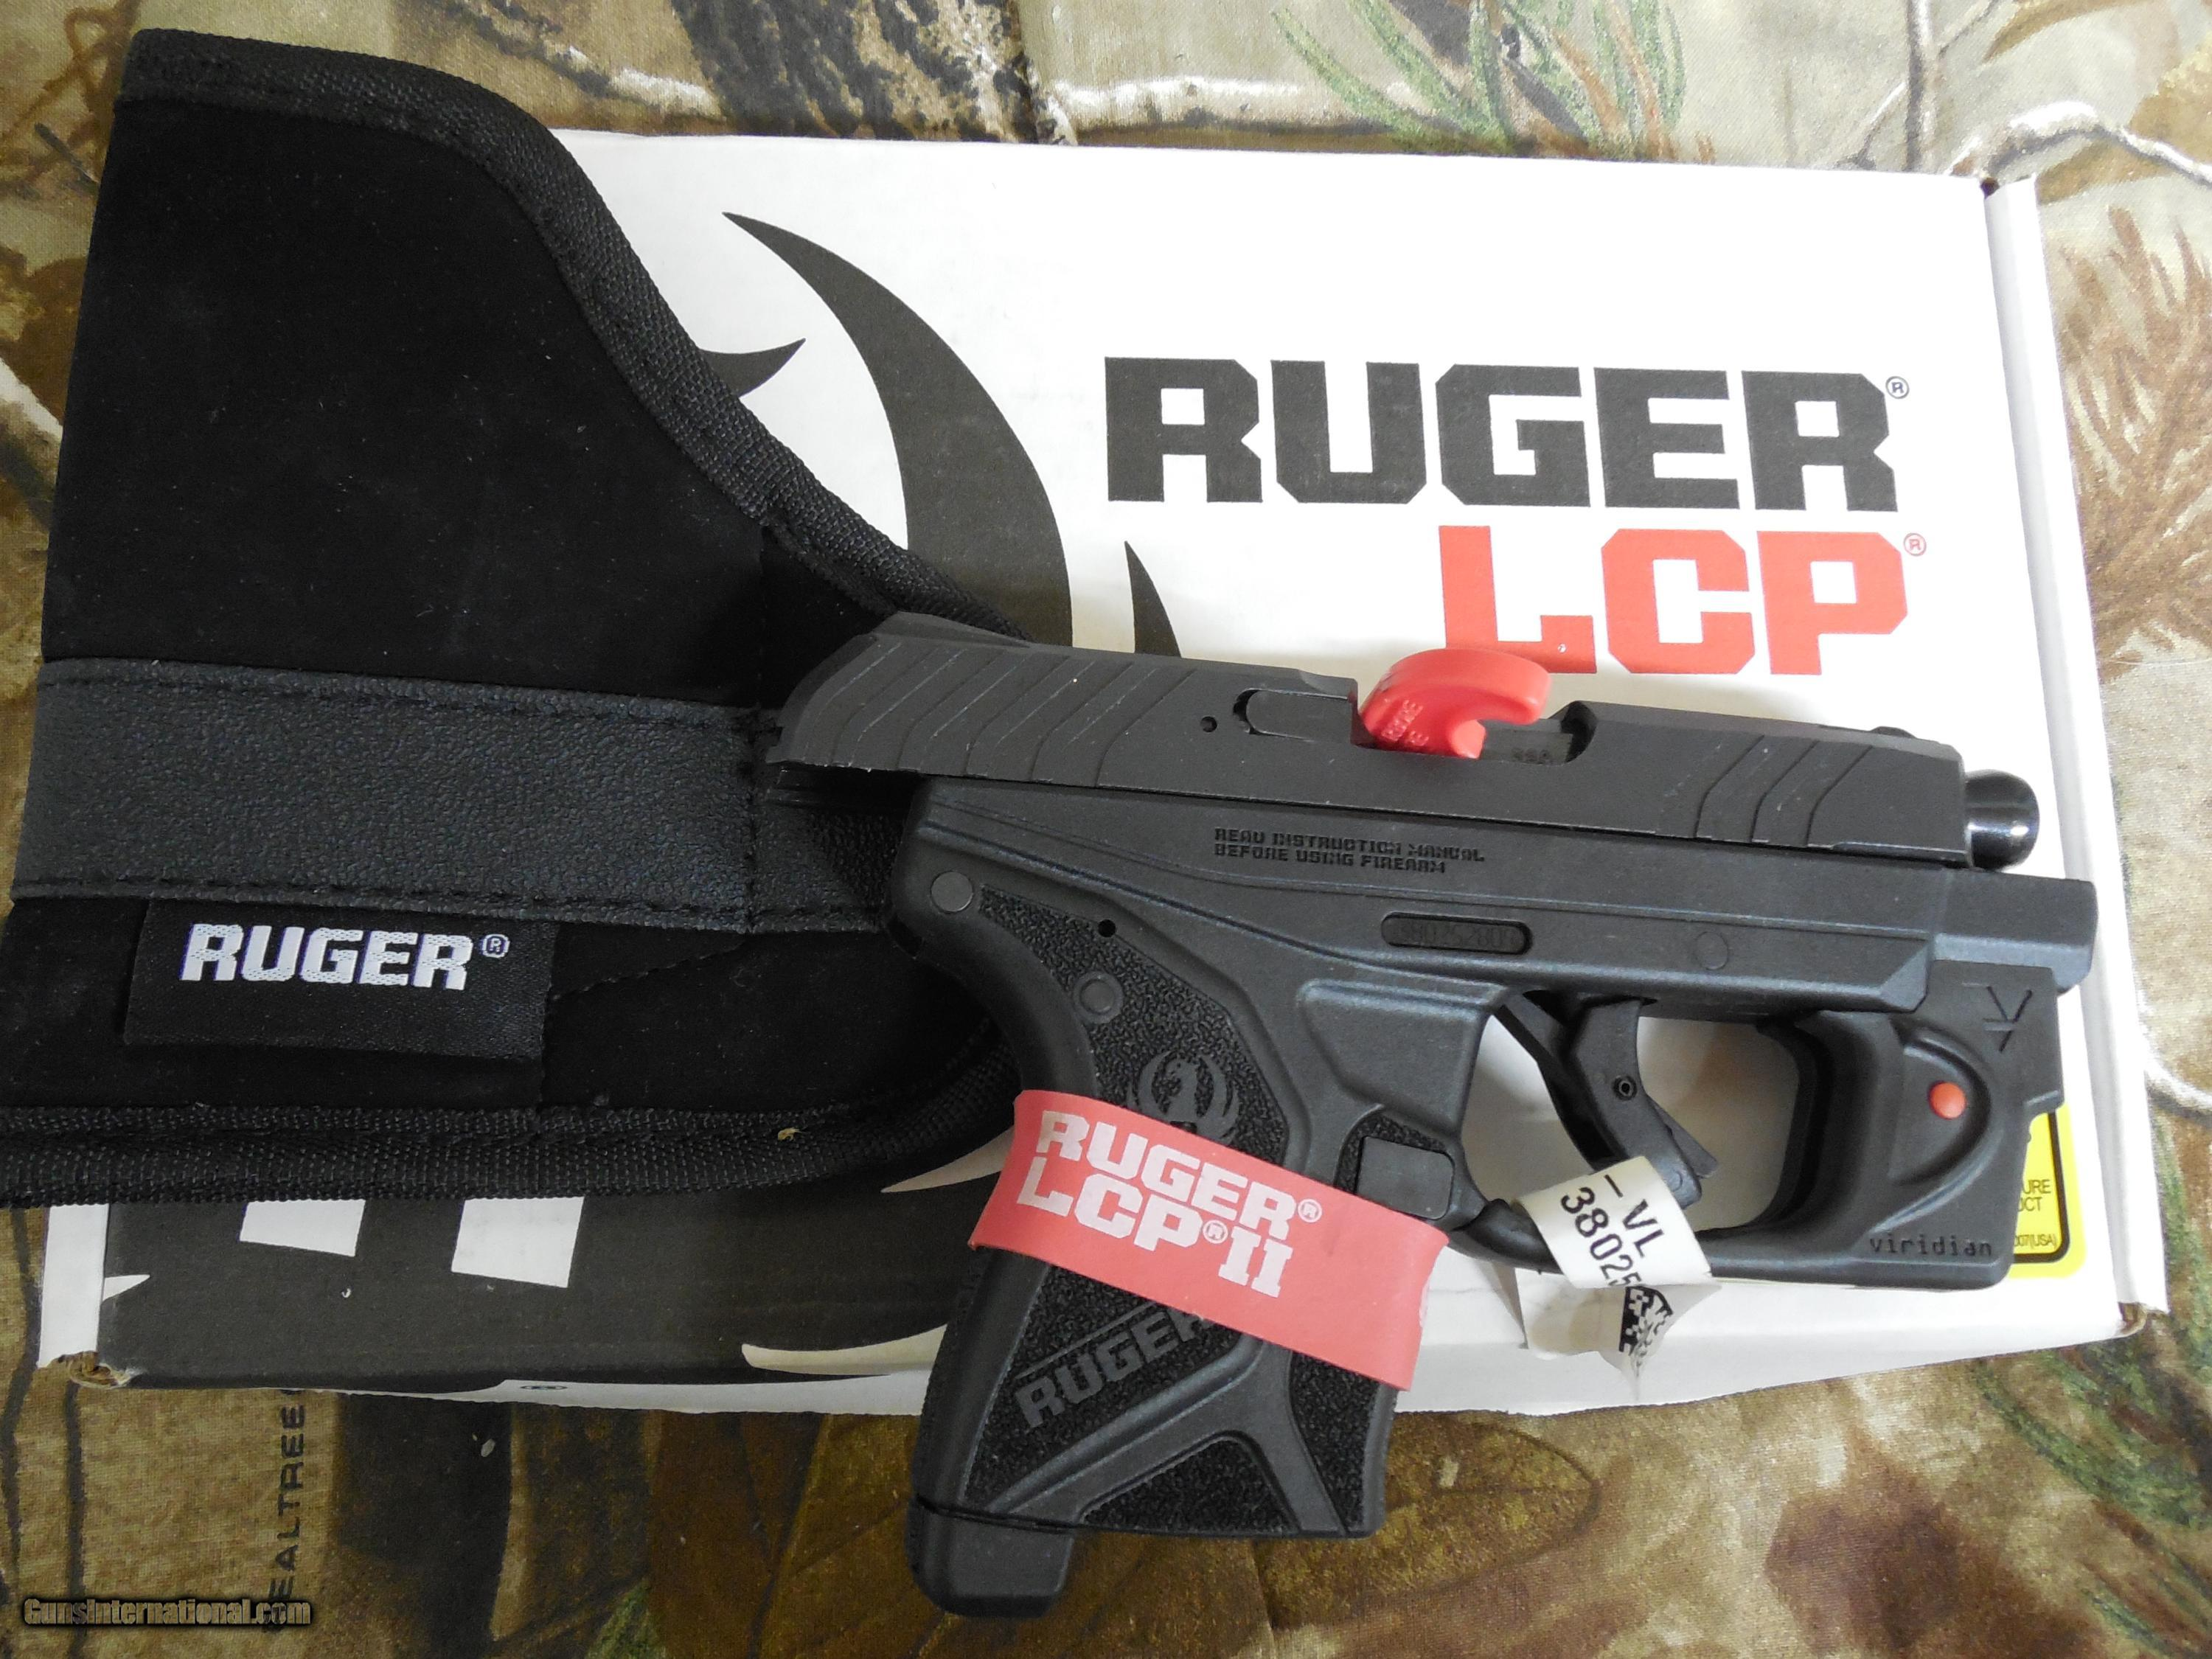 RUGER LCP-II WITH VIRIDIAN LASER, 380 ACP, 6 ROUND MAGAZINE